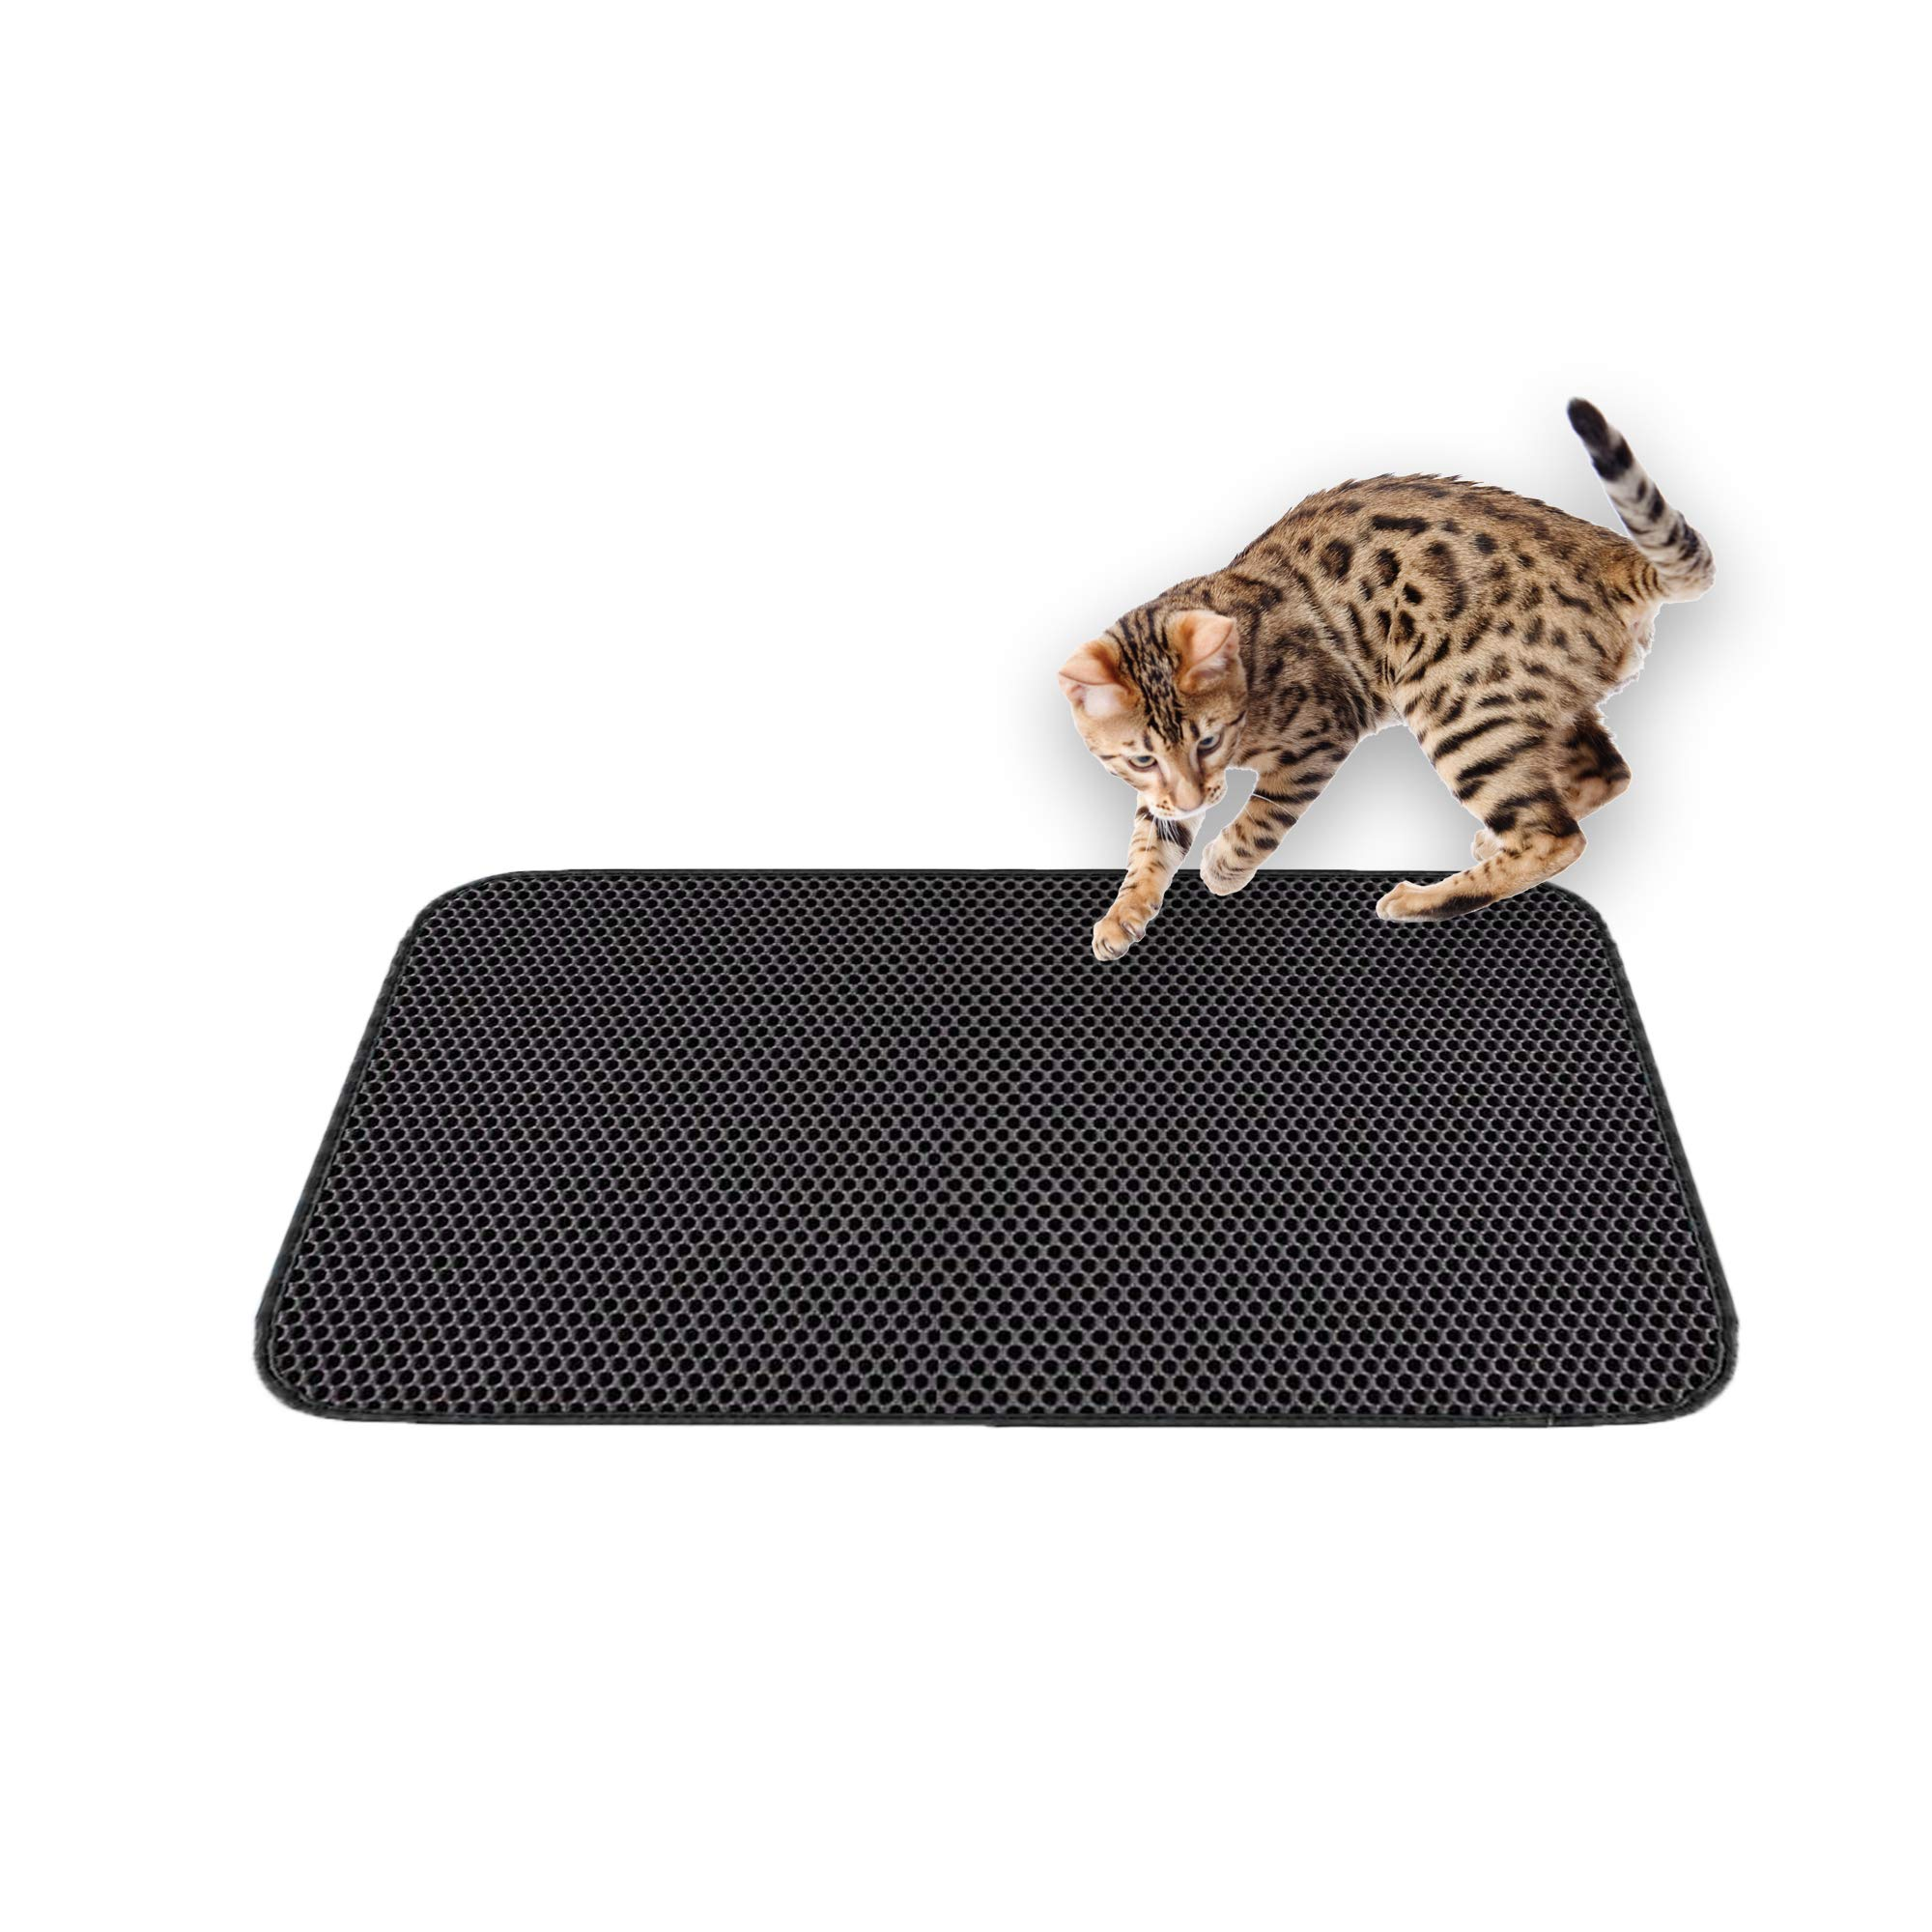 Pet Craft Supply Premium Durable Double Layer Cat Litter Mat Trapper Water Resistant Scatter Control Easy Clean Light Weight EVA Foam Rubber Honeycomb Design Large Size (24X30) by Pet Craft Supply